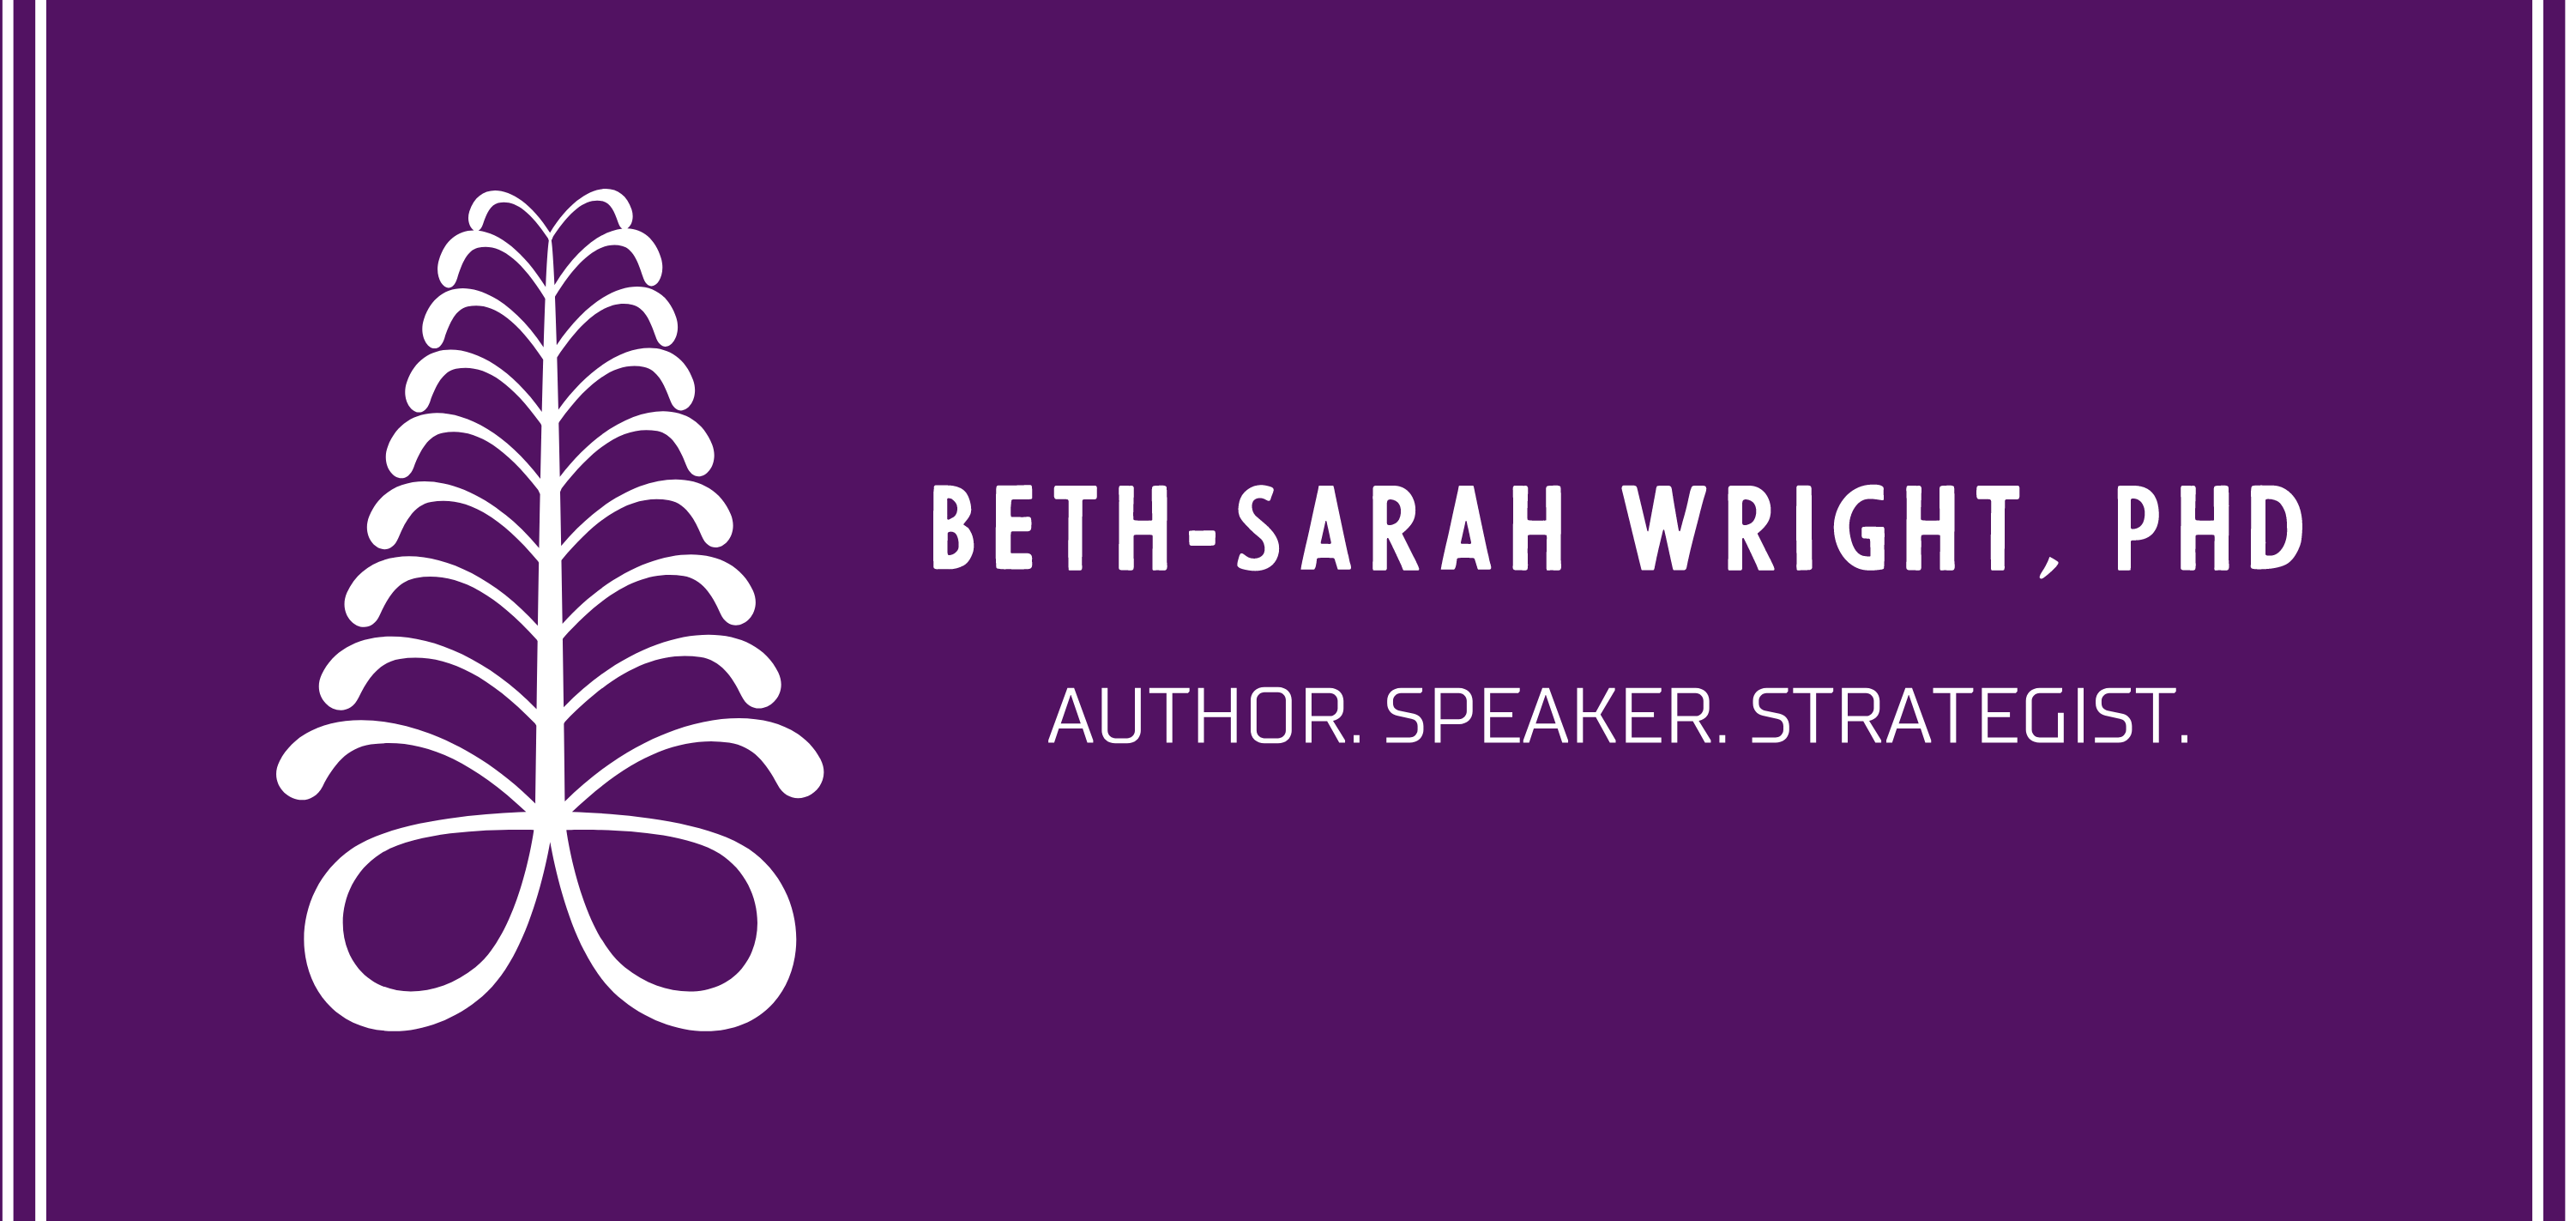 Beth-Sarah Wright, PhD